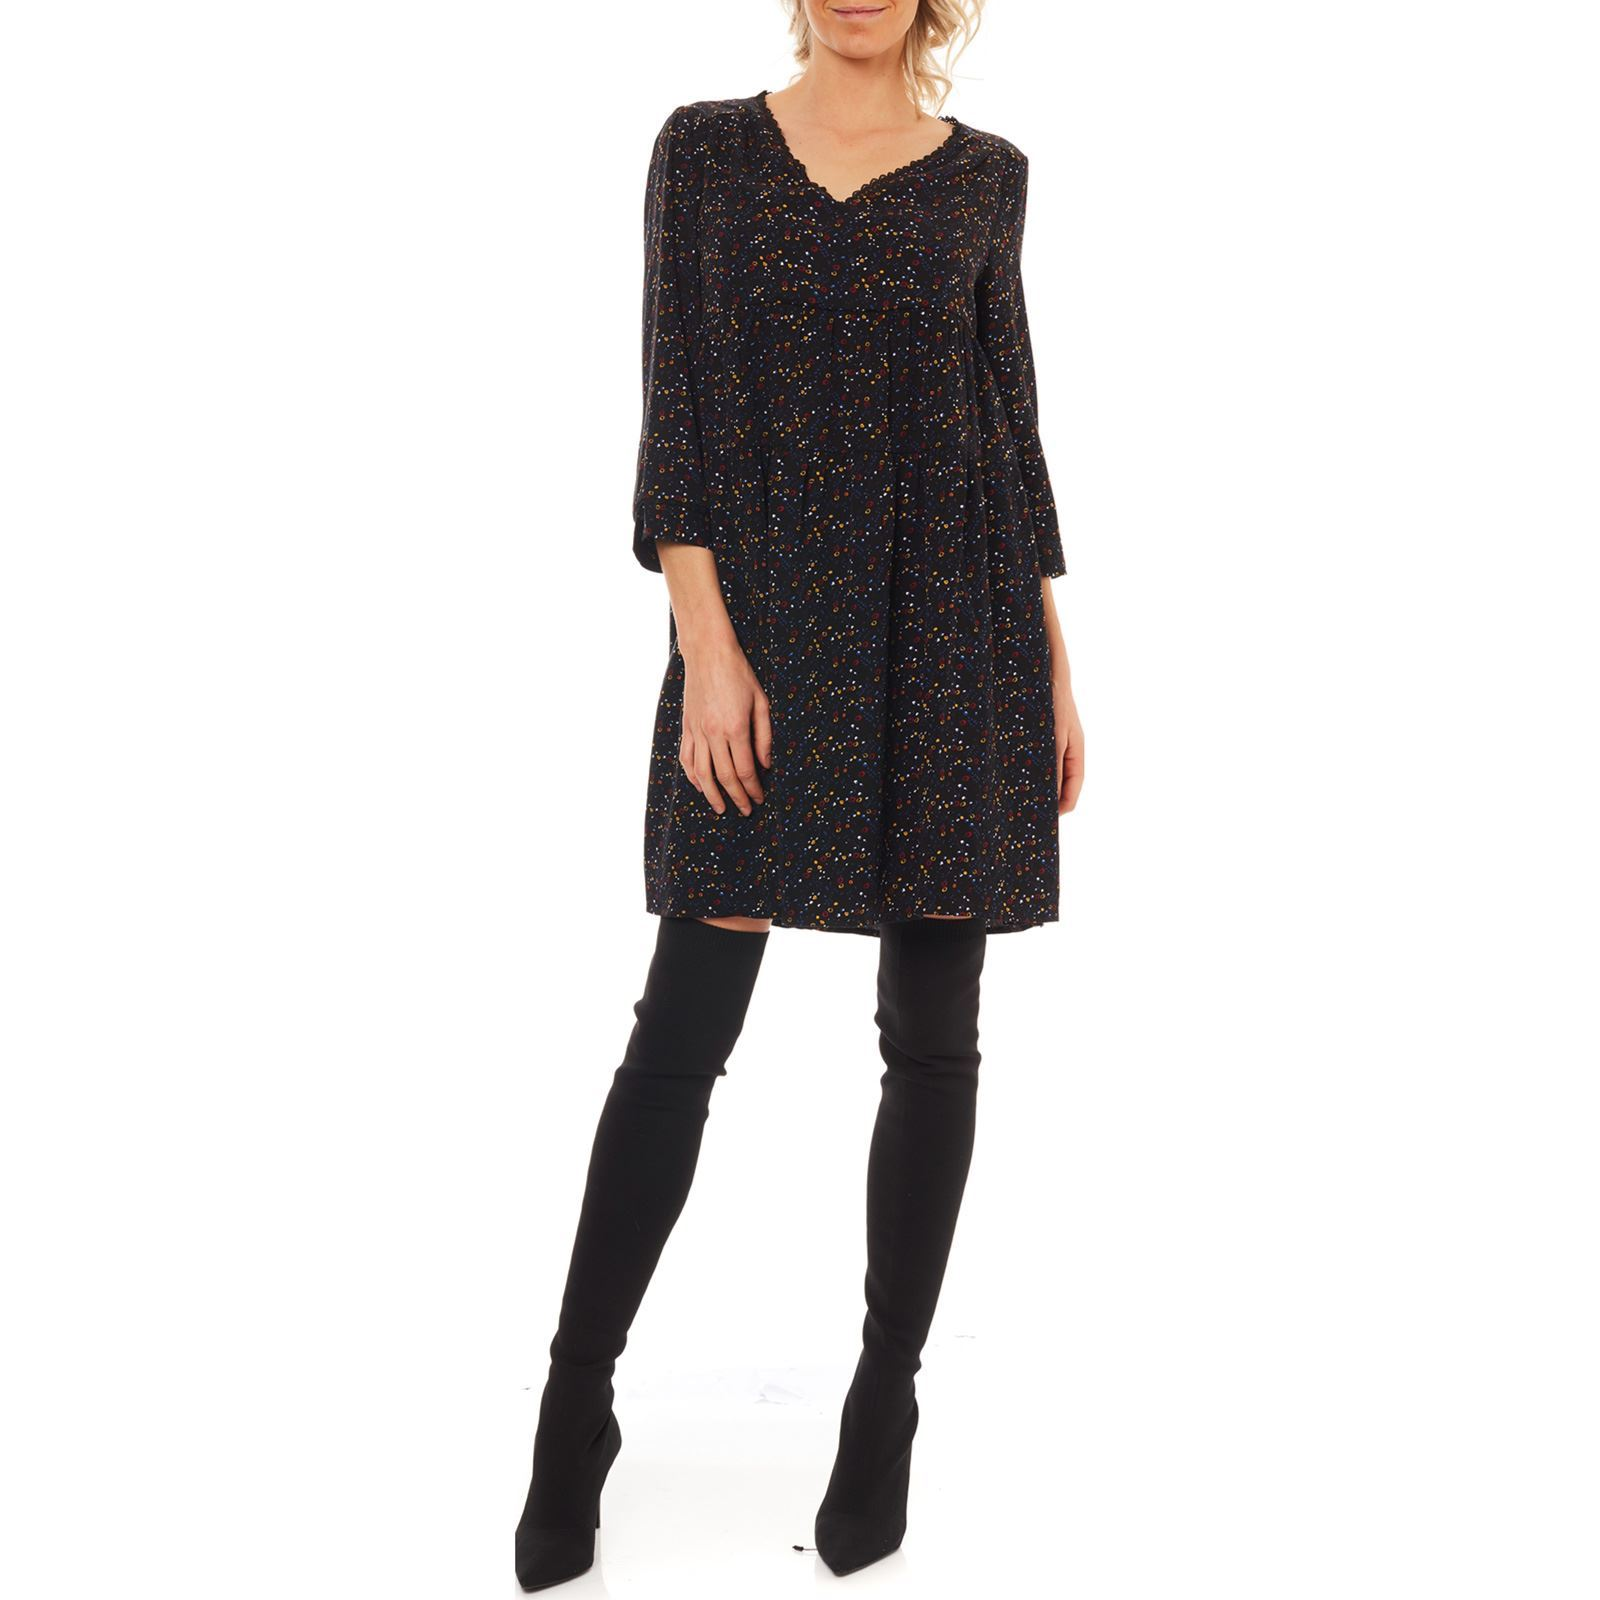 Femme Only Only Robe V FluideNoir IeWE9bDHY2